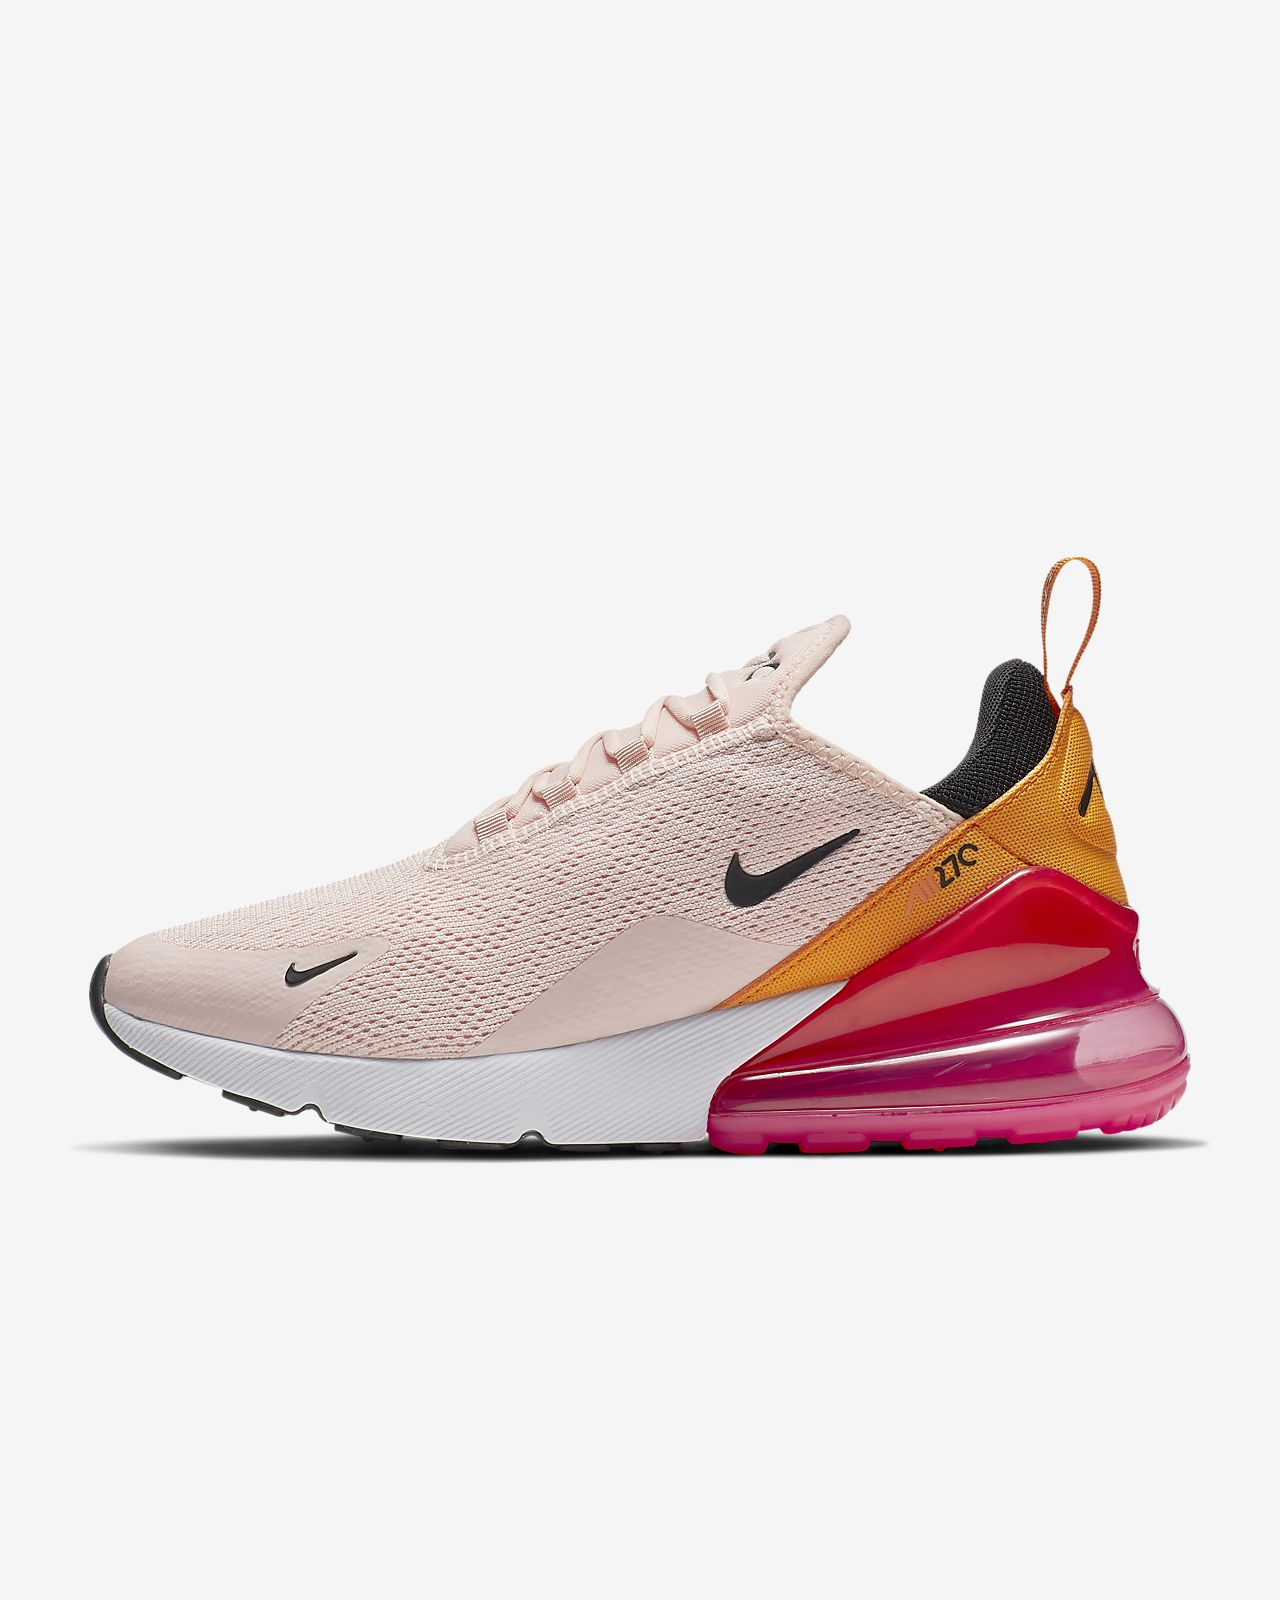 8f2882d1302e2 Nike Air Max 270 Women s Shoe. Nike.com